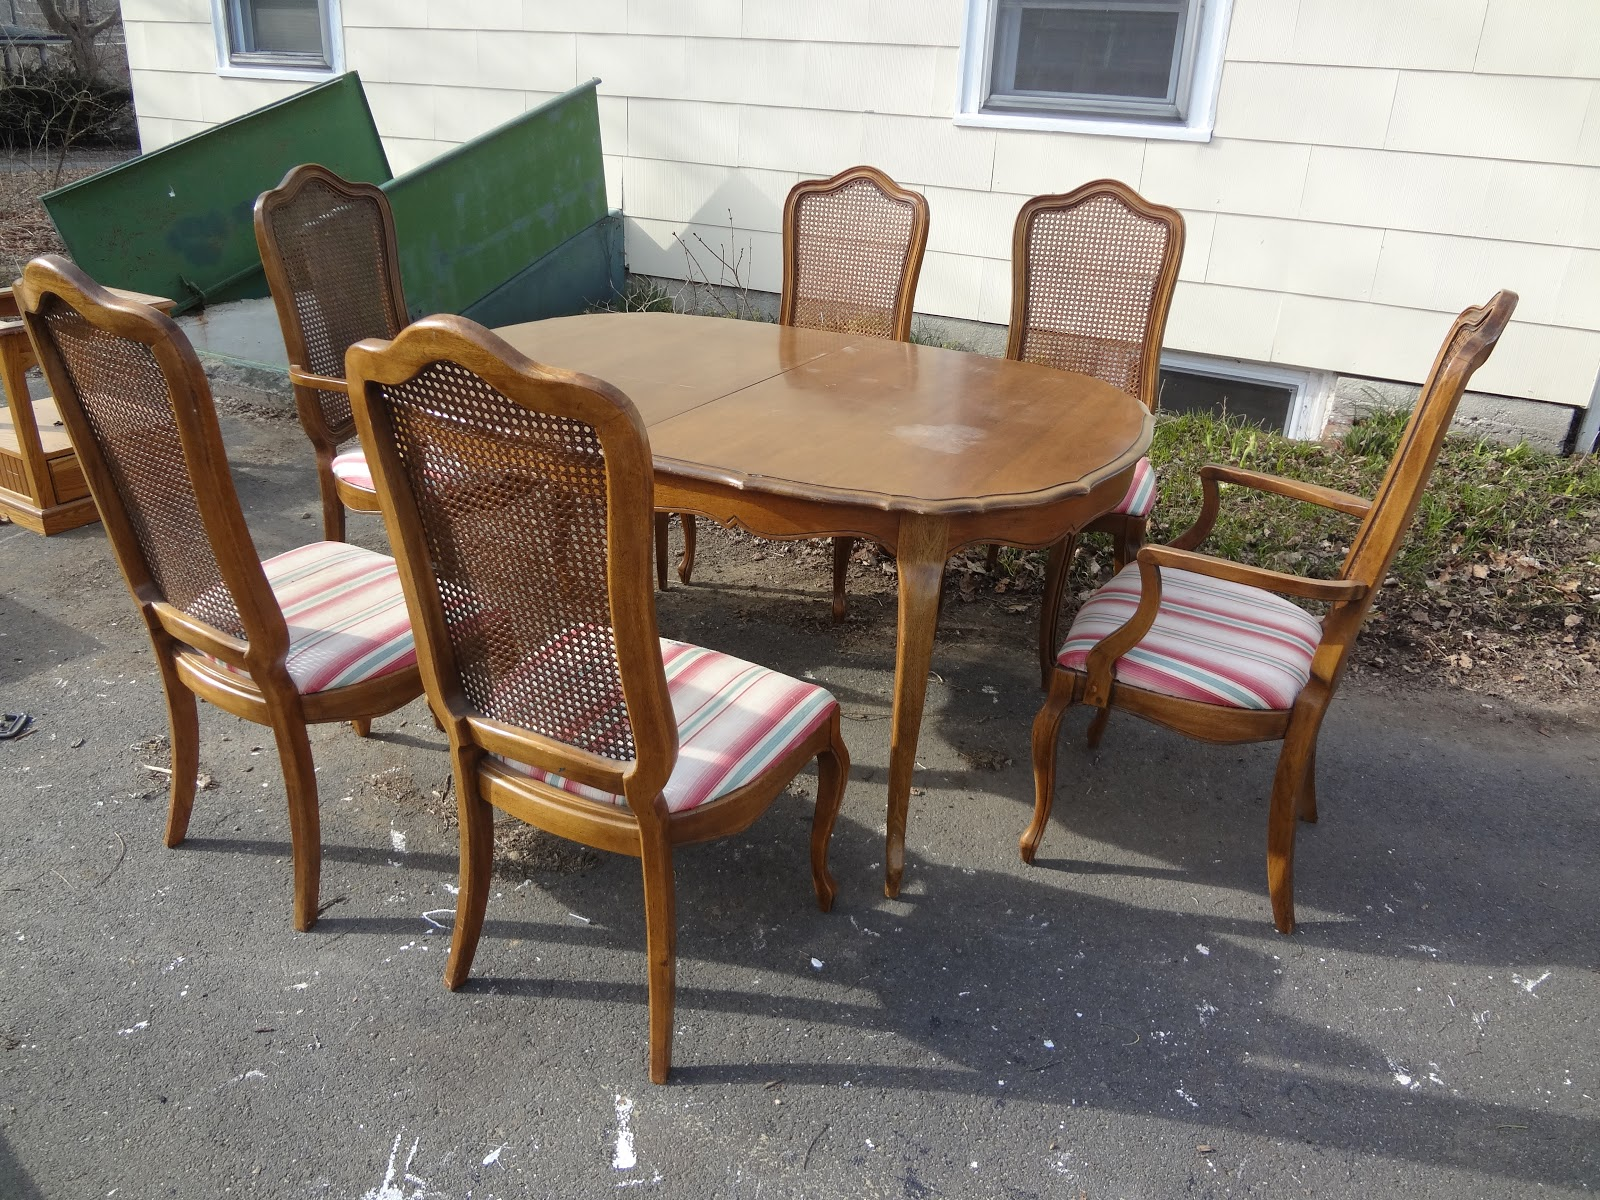 New Acquisitions: A Fruitwood Thomasville Dining Set